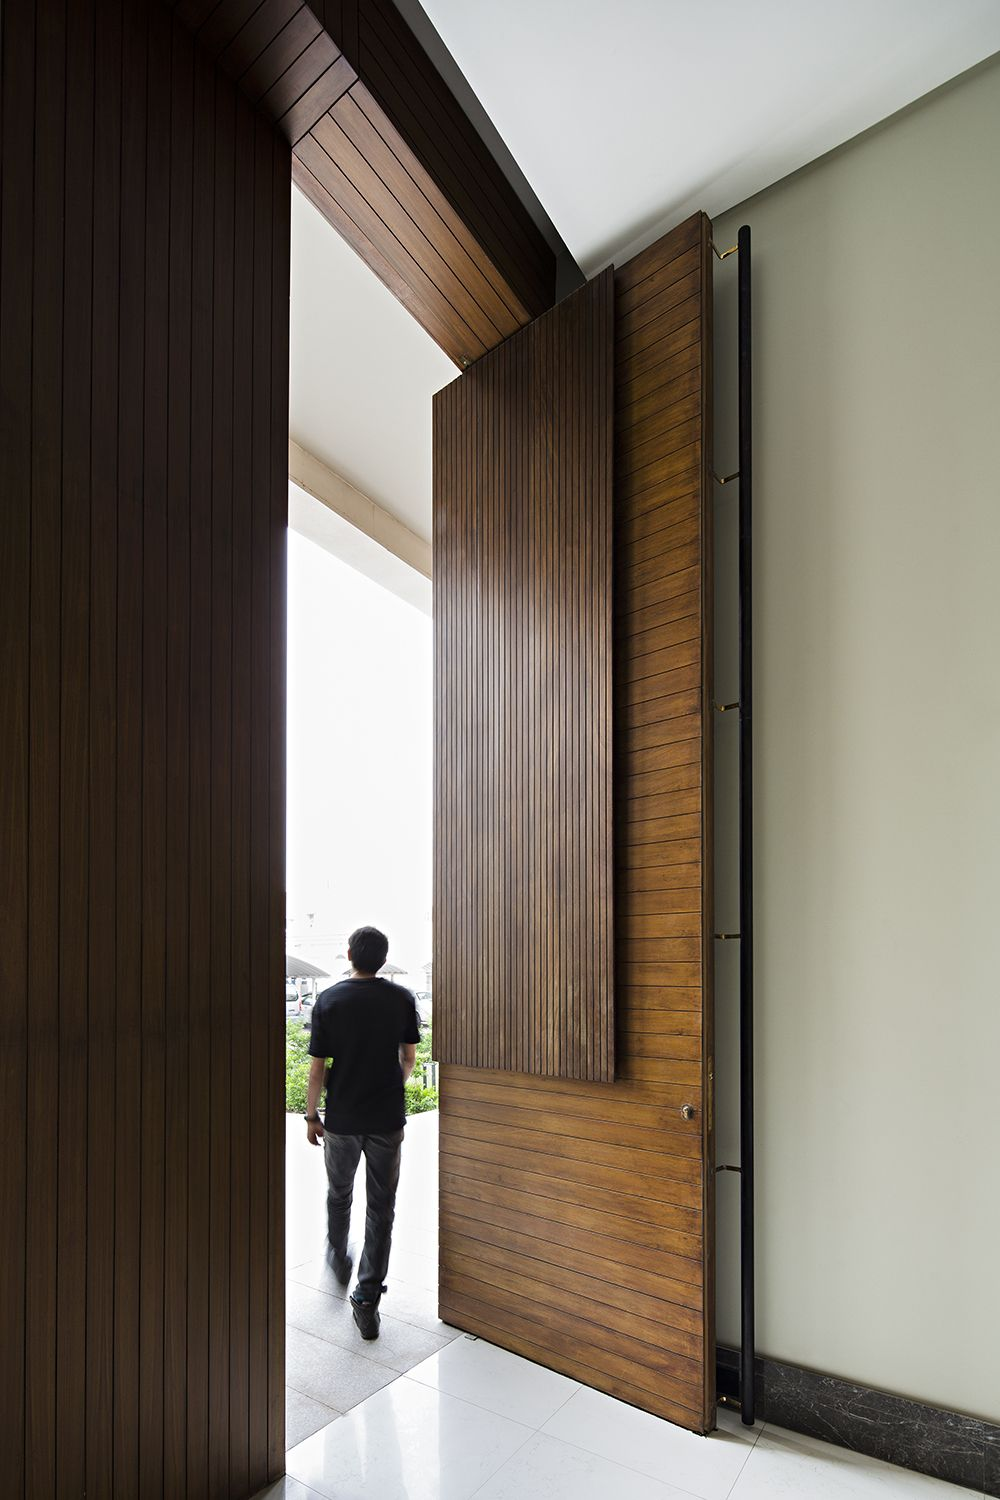 Modern Interior Doors Ideas 14: Gallery Of Tetris House / Massive Order - 16